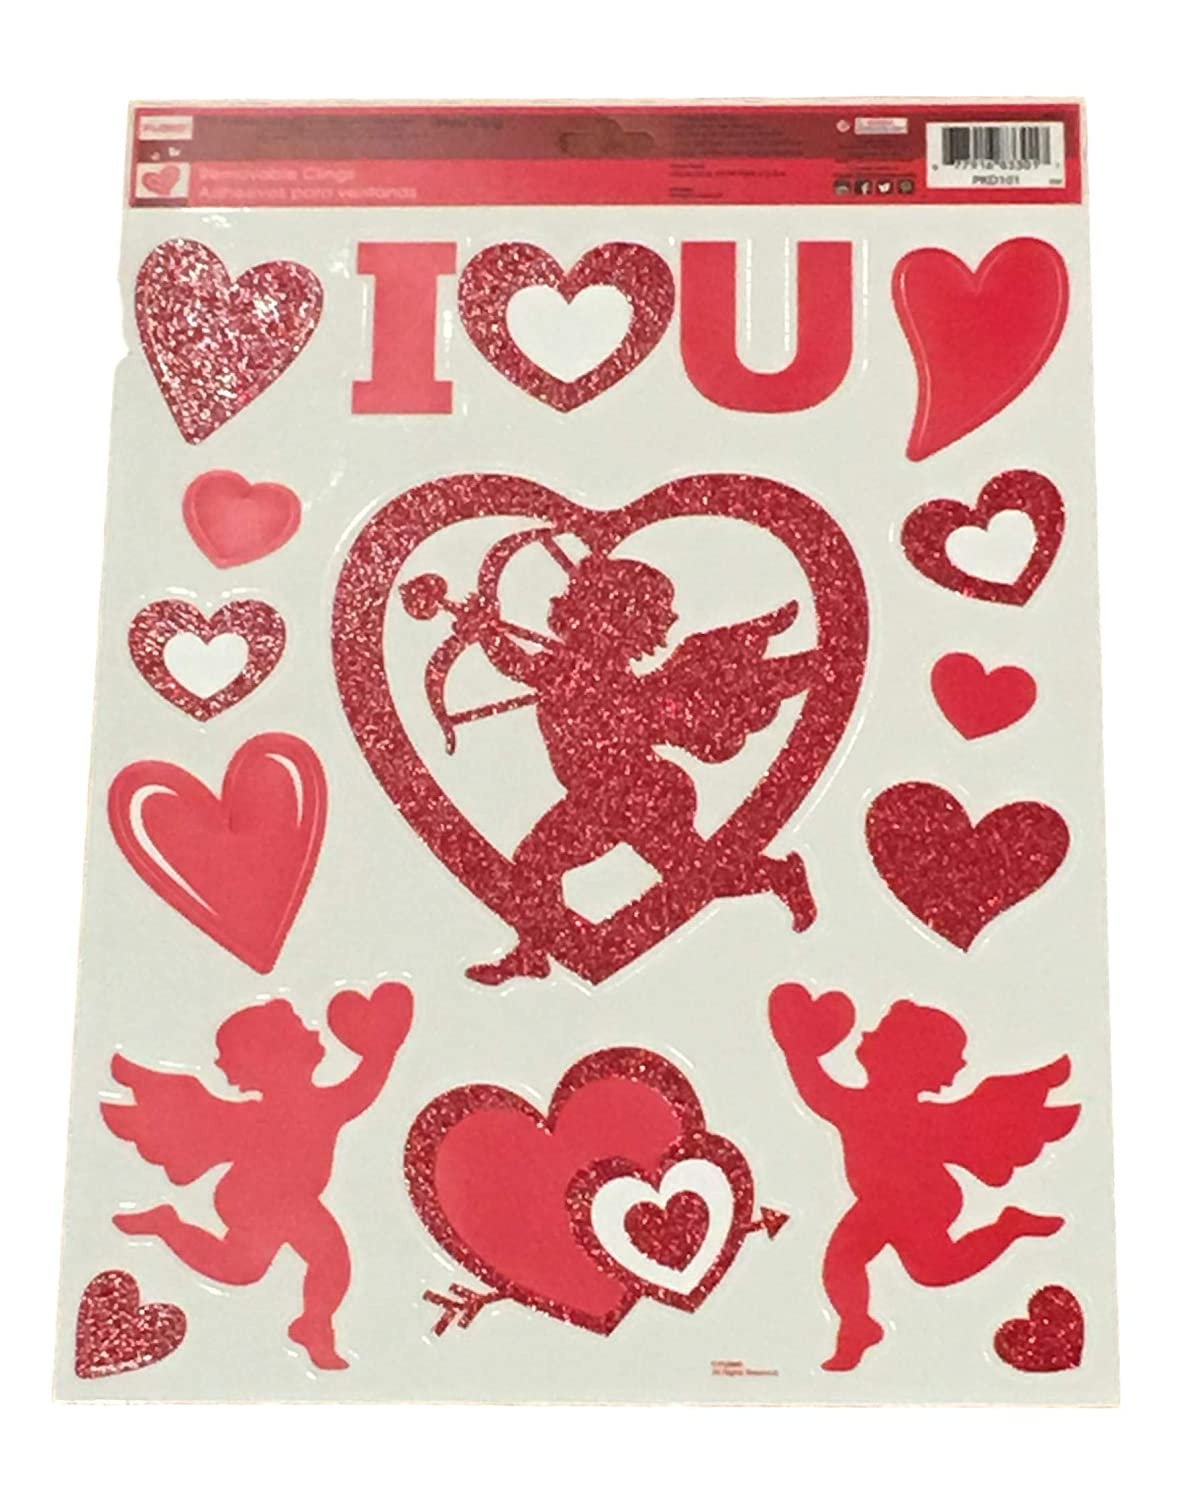 Valentines Day Themed Window Clings Plum Nellies Treasures Valentines Window Decals Glitter Kisses Love /& Cupid Plum Nellie/'s Treasure/'s Valentines Day Window Conversation Hearts Cupid I Love You